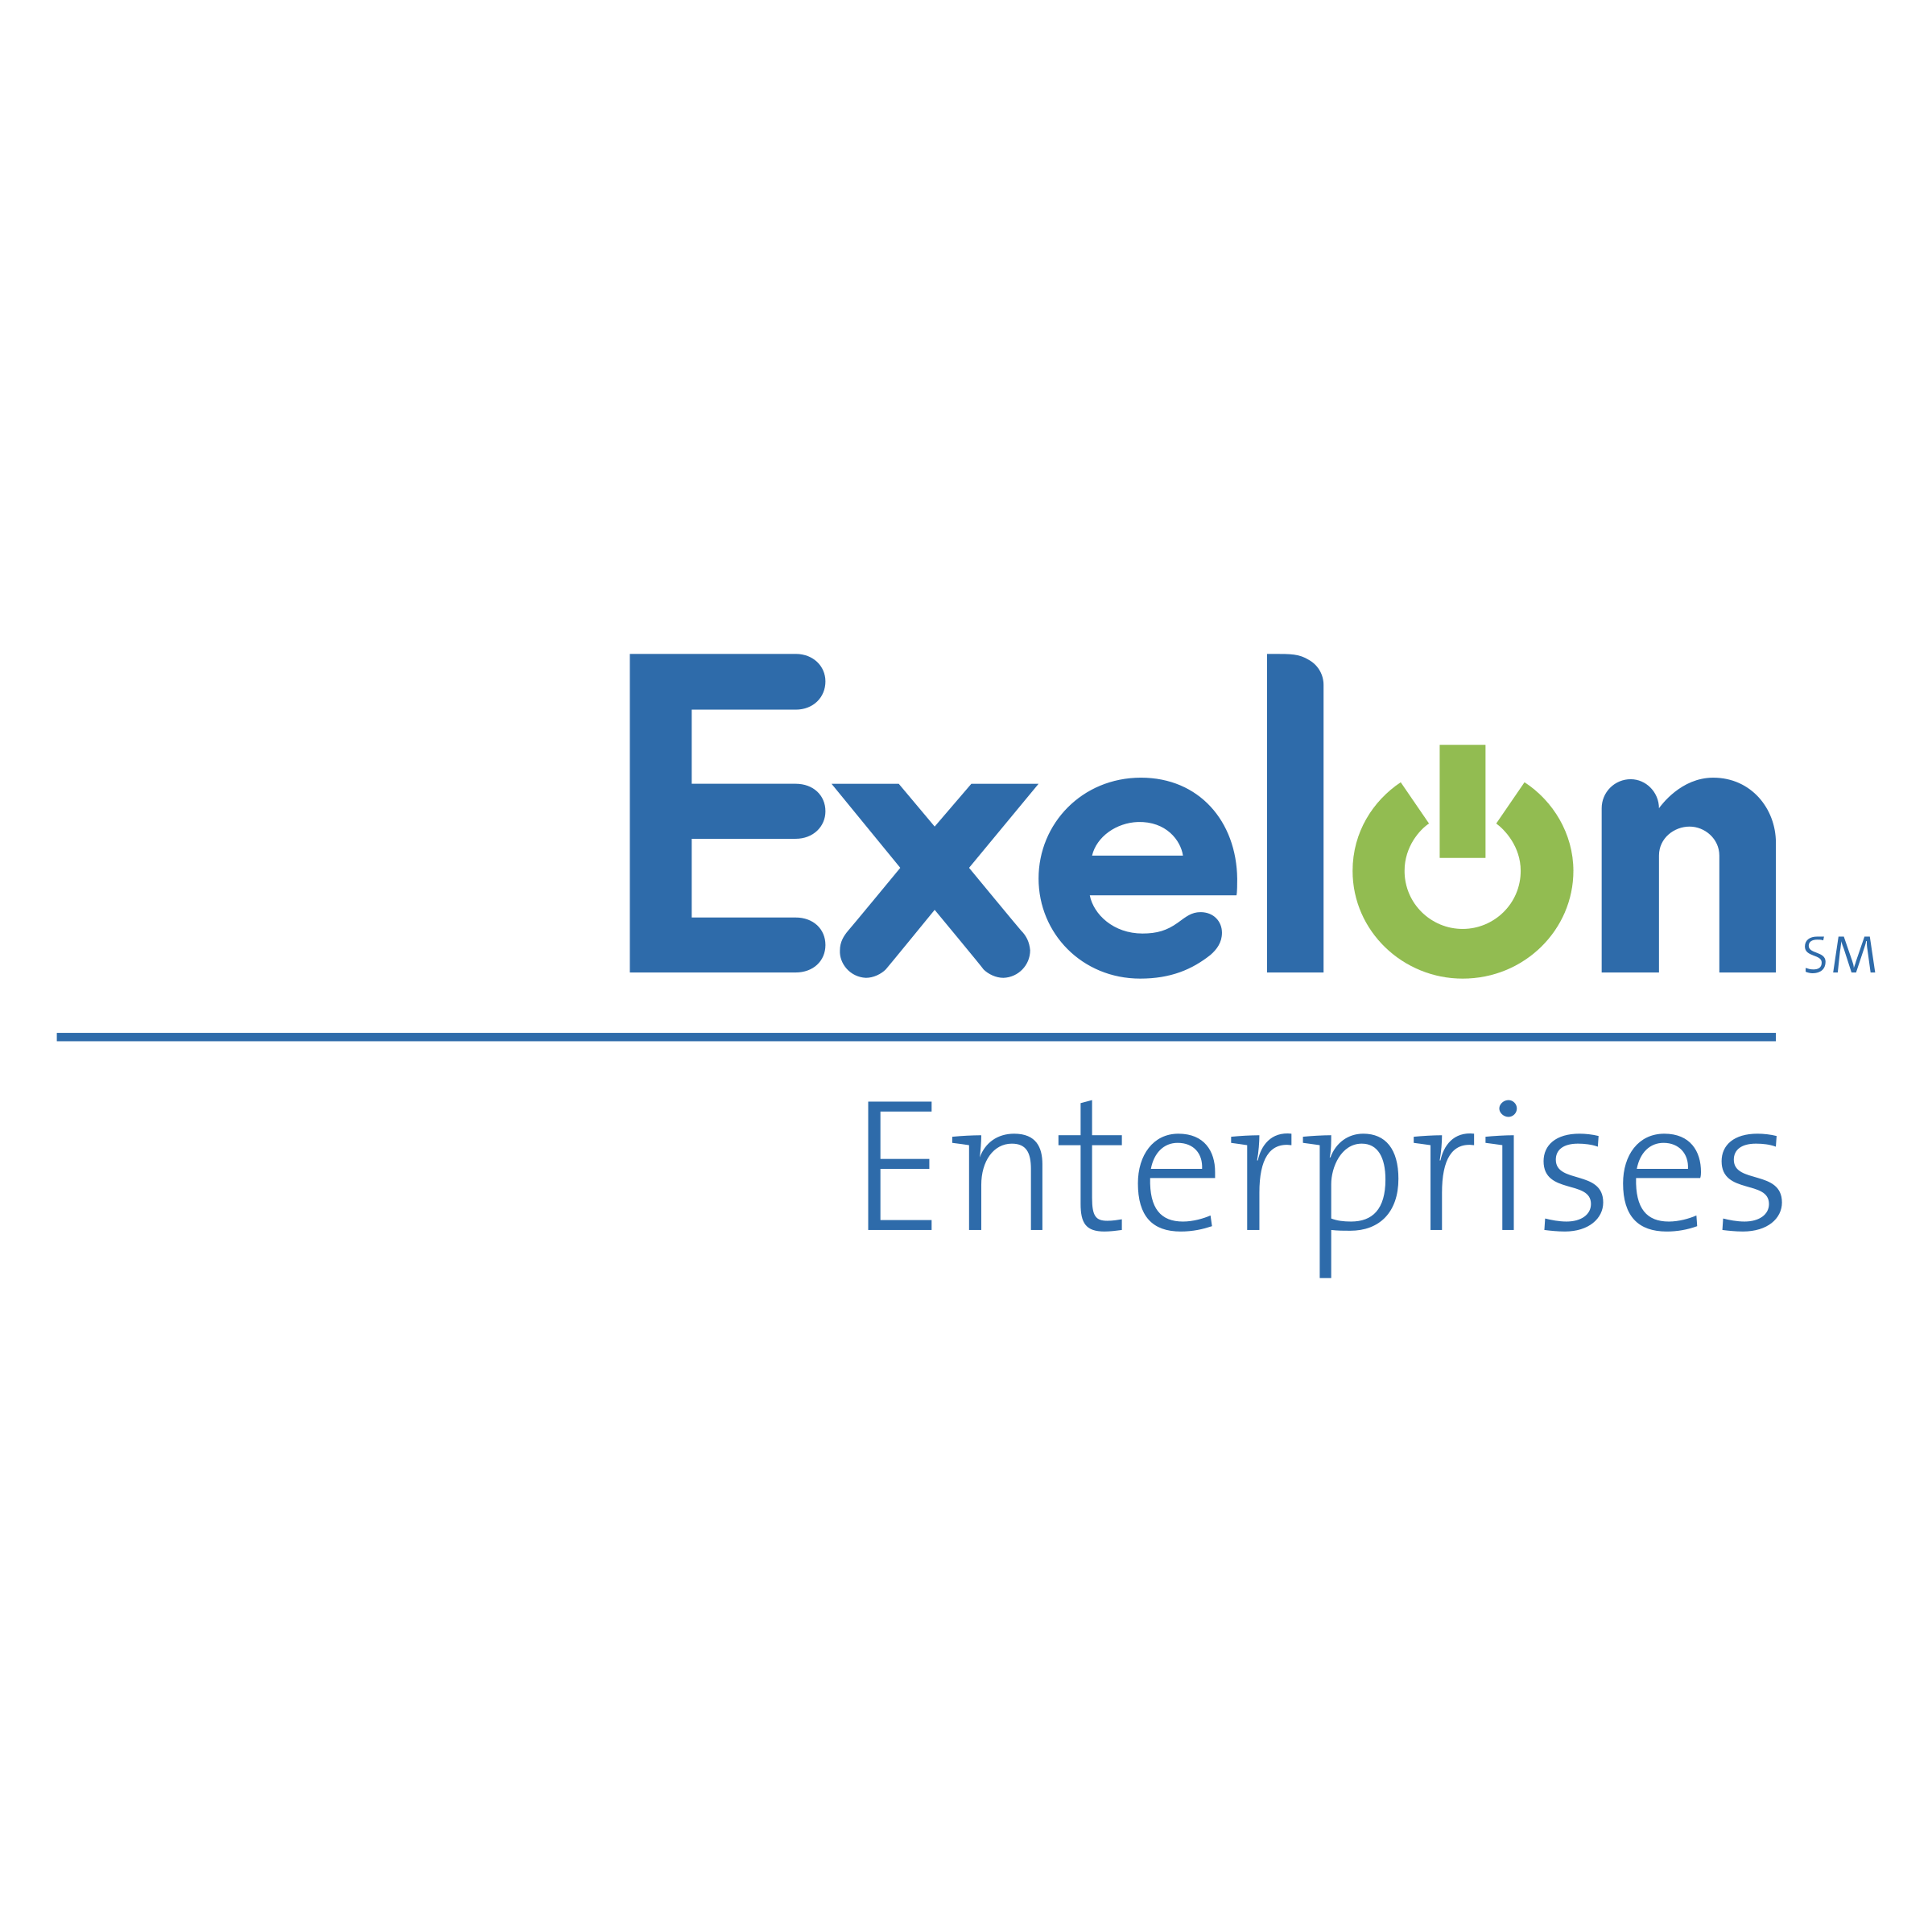 Exelon Logo - Exelon Logo PNG Transparent & SVG Vector - Freebie Supply